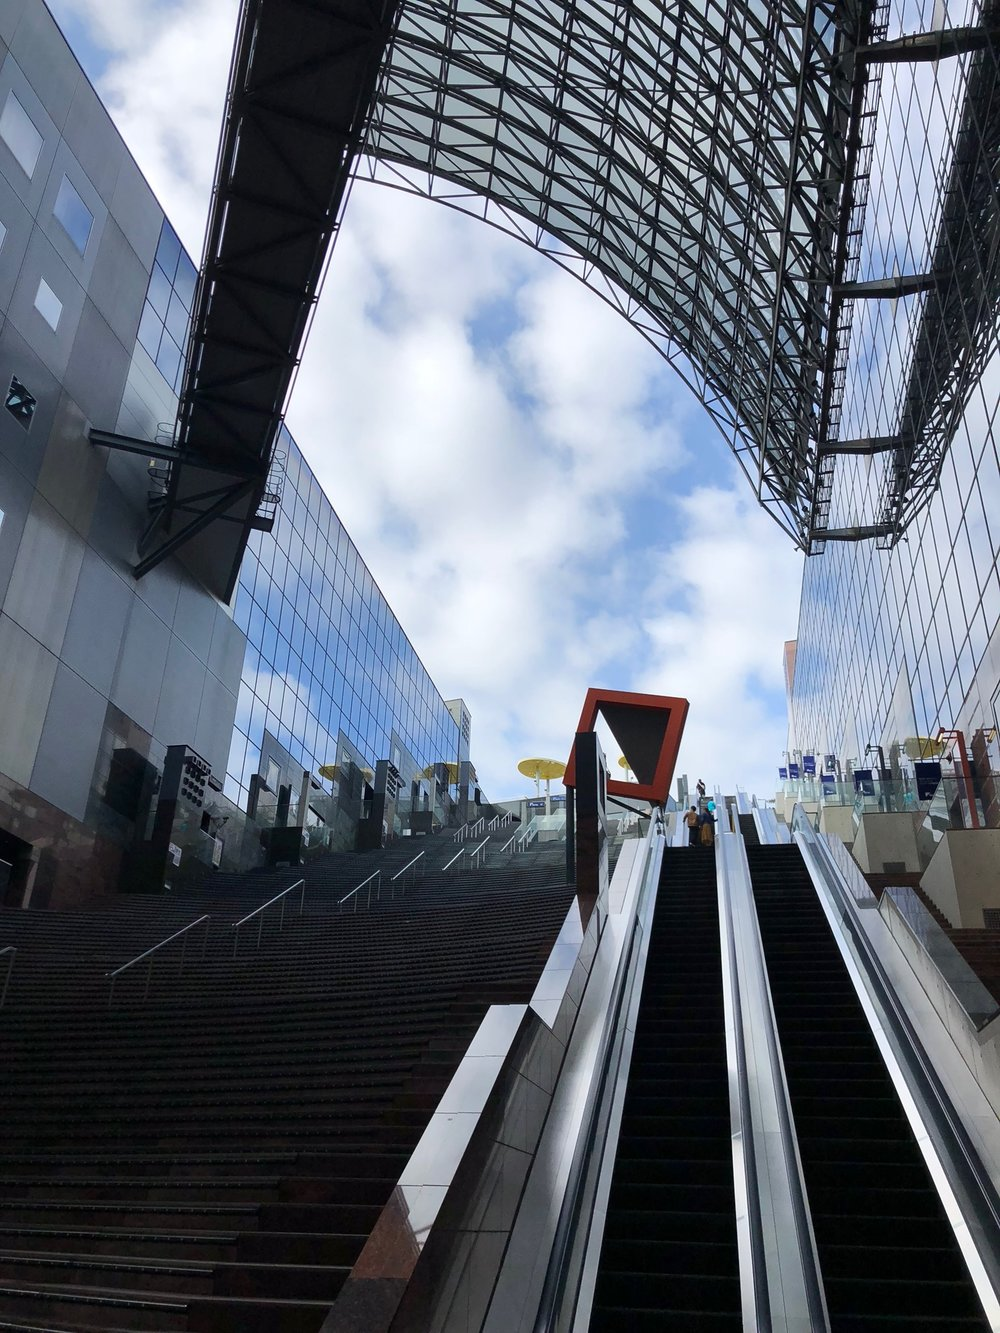 When we arrived in Kyoto Station initially, we immediately hopped on a metro headed towards our Airbnb. We missed the fact that above ground was a MASSIVE and beautifully designed train station.